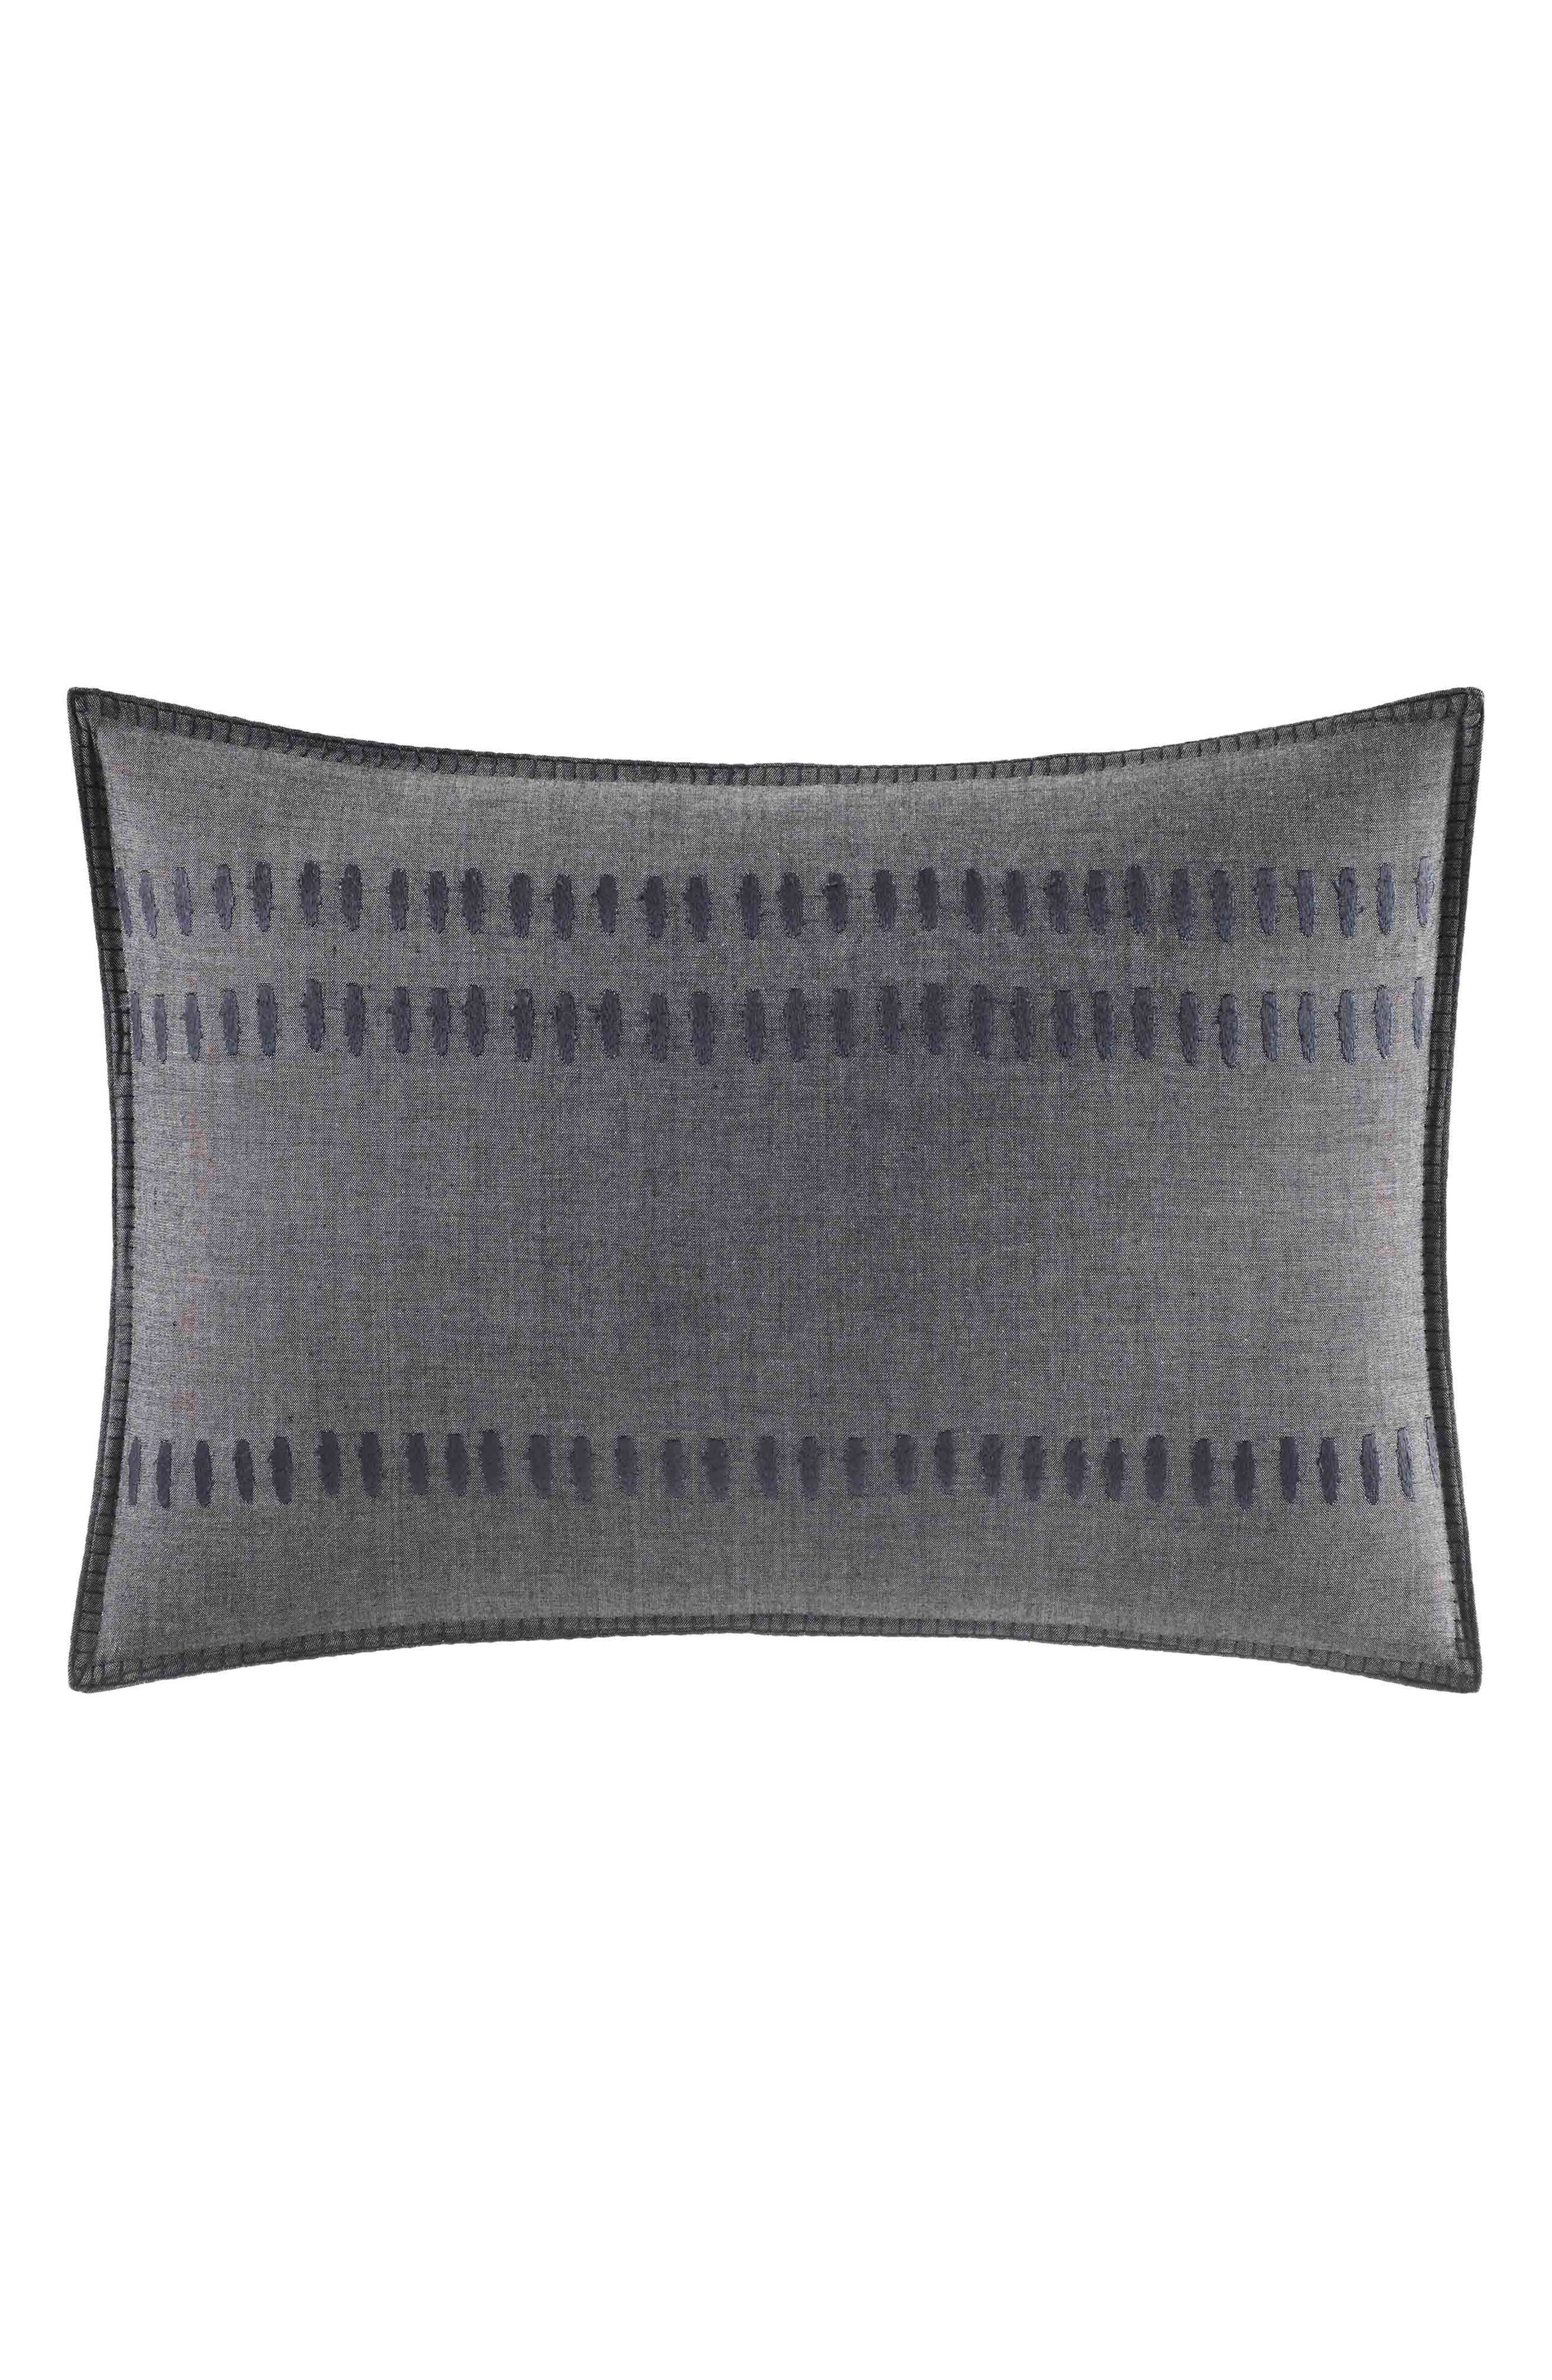 Nomad Stitched Accent Pillow,                         Main,                         color, Dark Grey